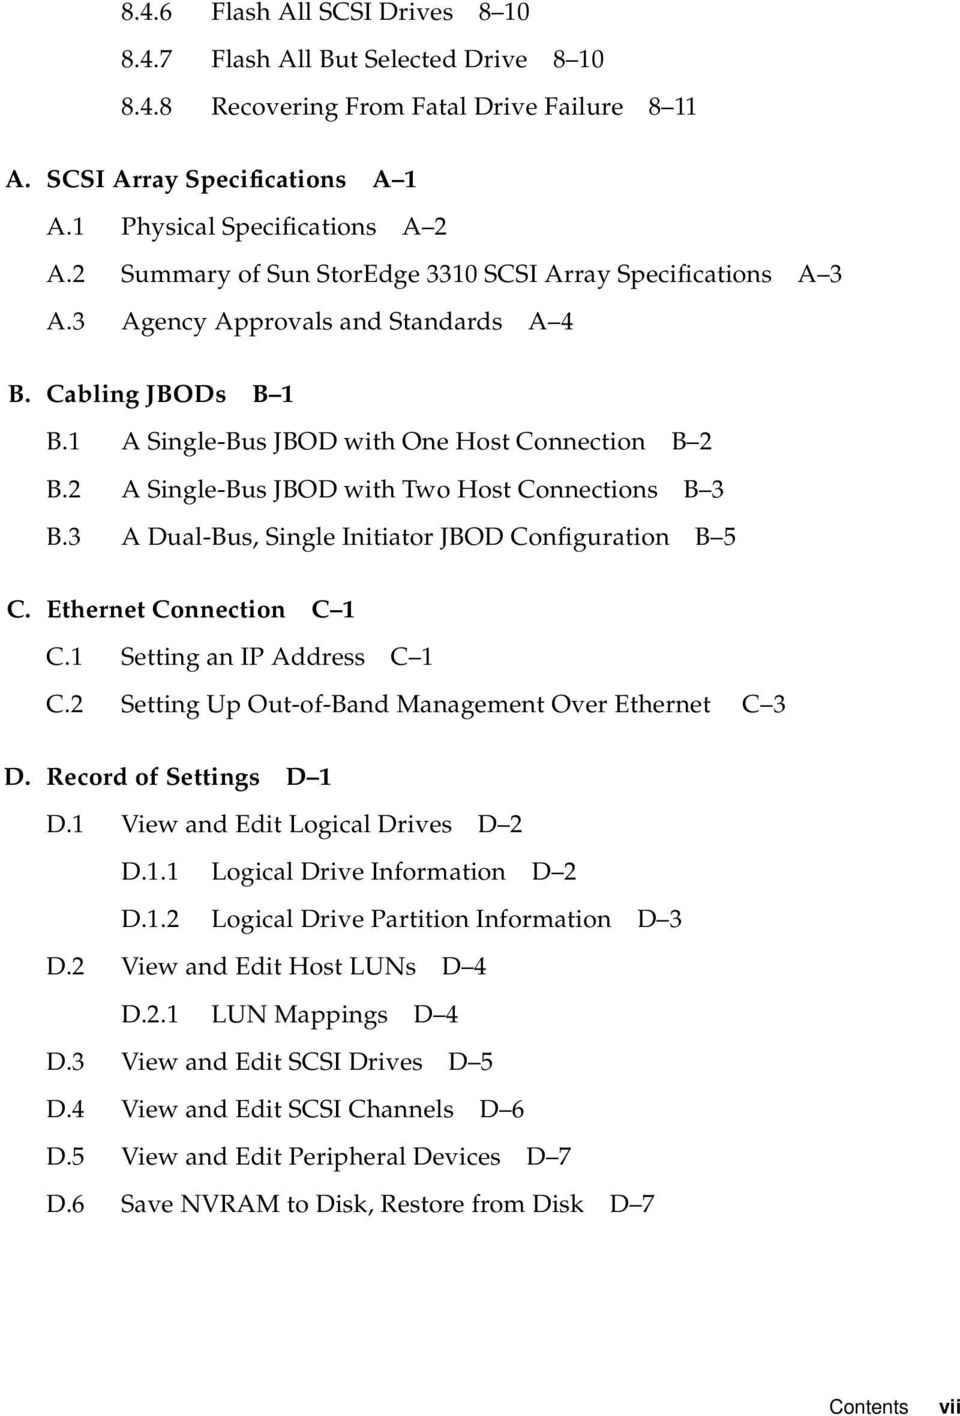 Sun Storedge 3000 Family Installation Operation And Service Manual Jbod Wiring Diagram 2 A Single Bus With Two Host Connections B 3 B3